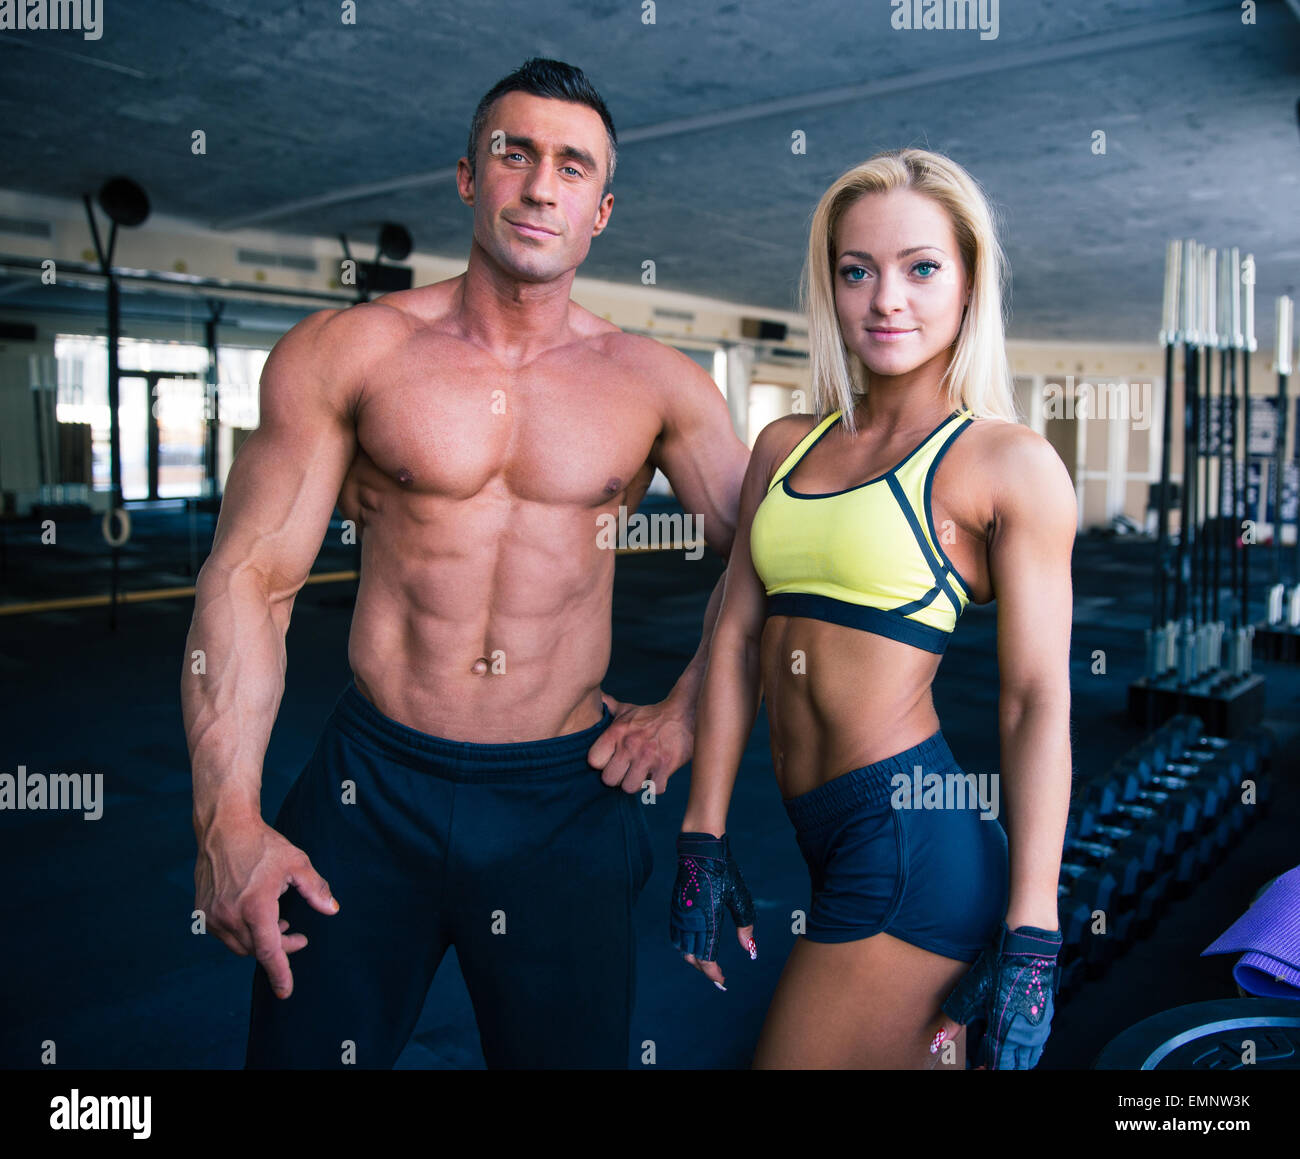 women like muscular men